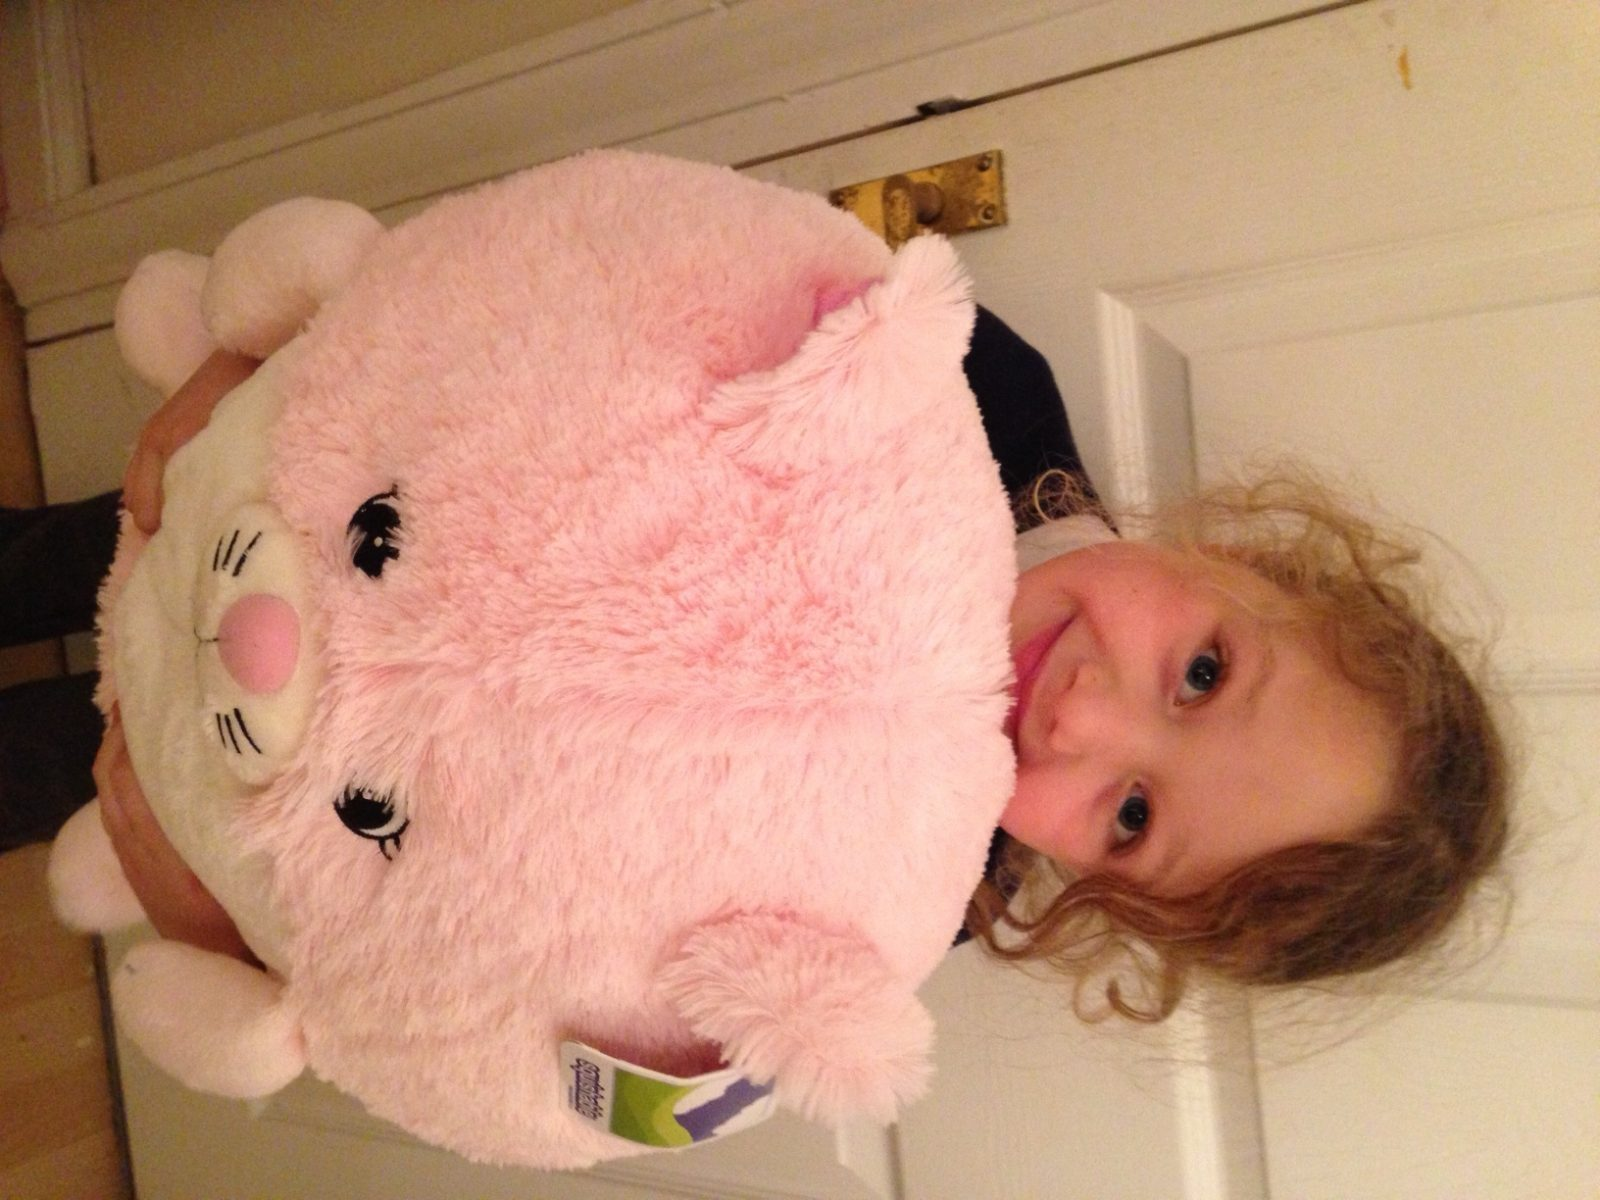 Best hug ever from a Squishable.